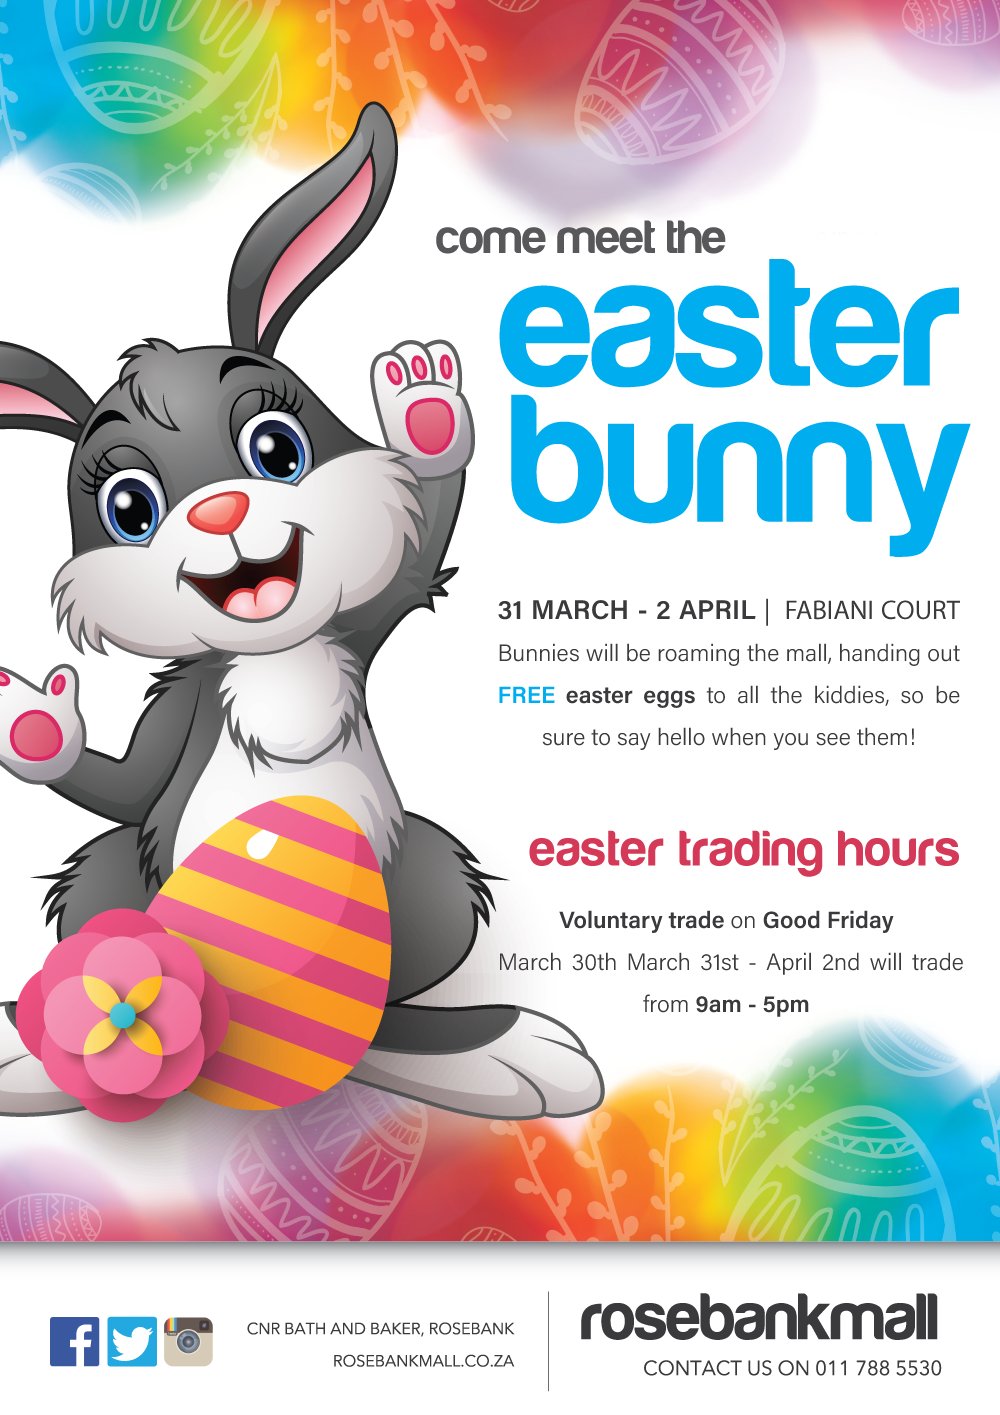 Come Meet the Easter Bunny